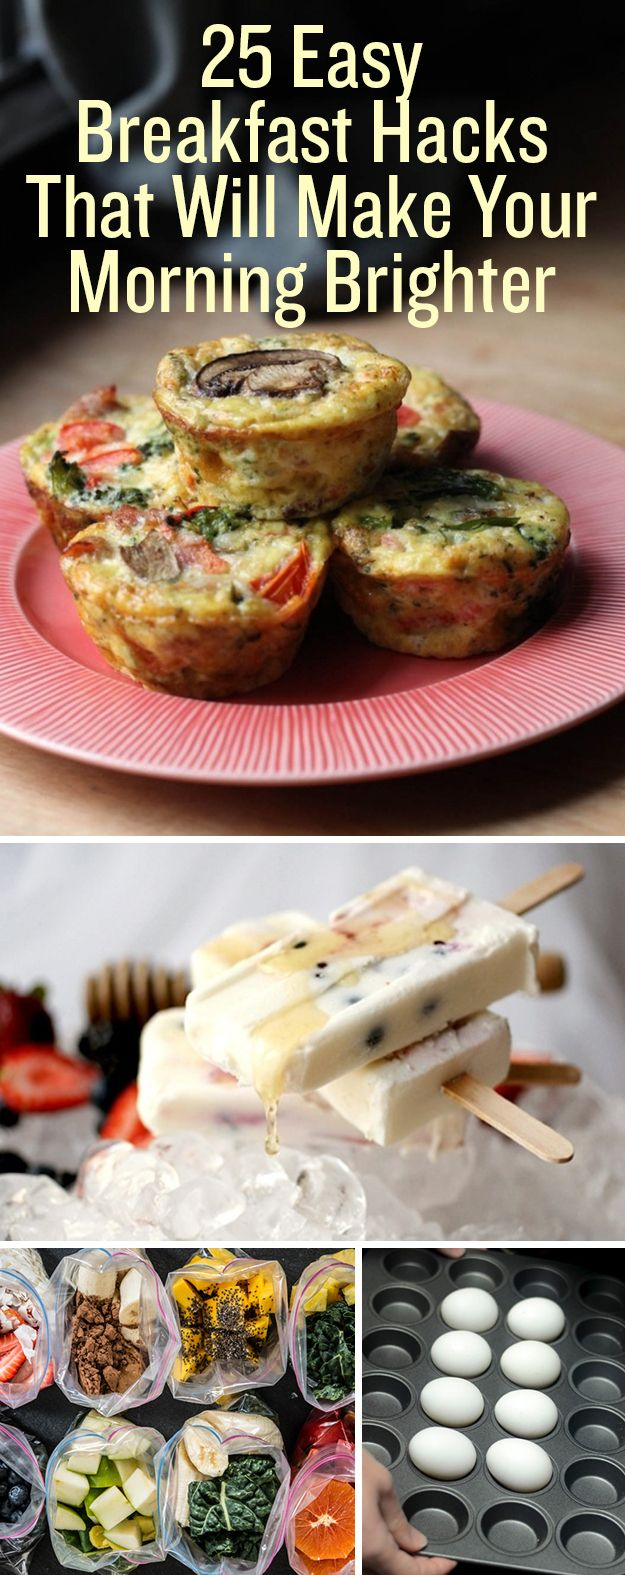 . #breakfast #recipes #brunch #recipe #healthy #easy #cheap